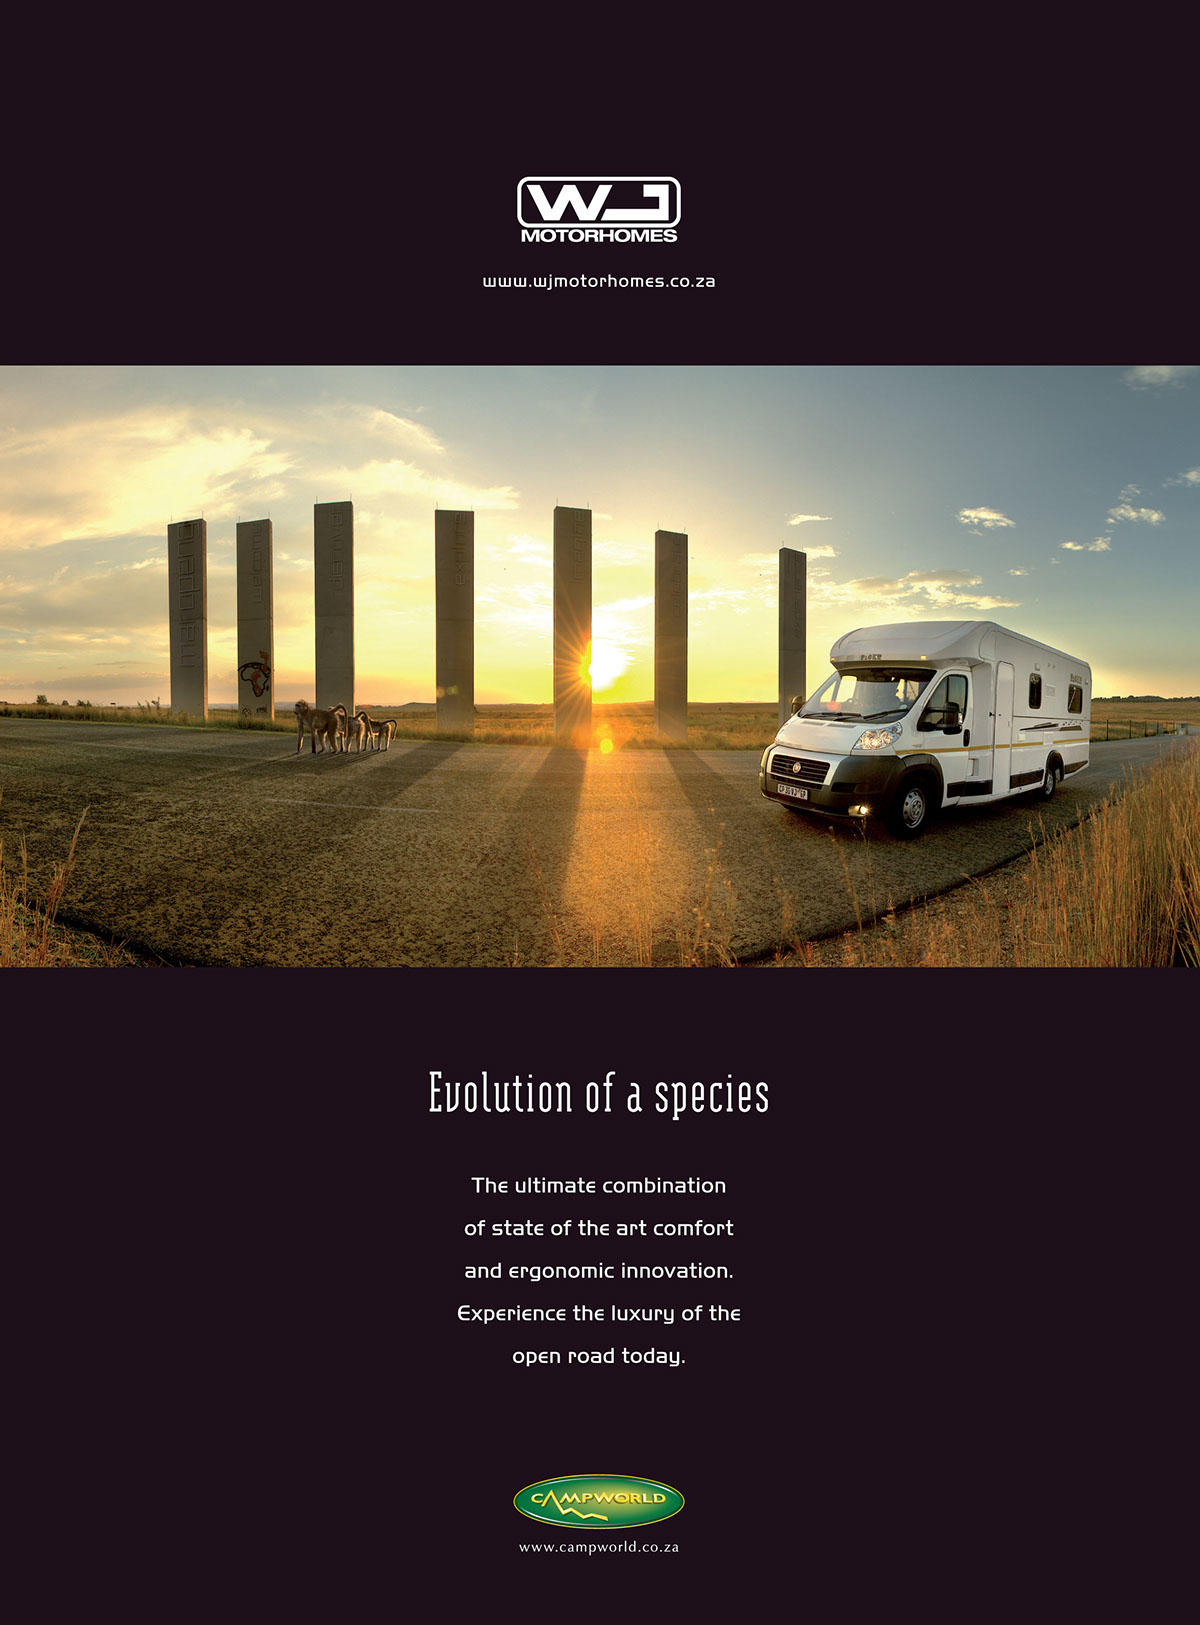 print advertisements on behance full page print ad for wj motorhomes responsible for client service concept art direction copywriting photography photo manipulation and print